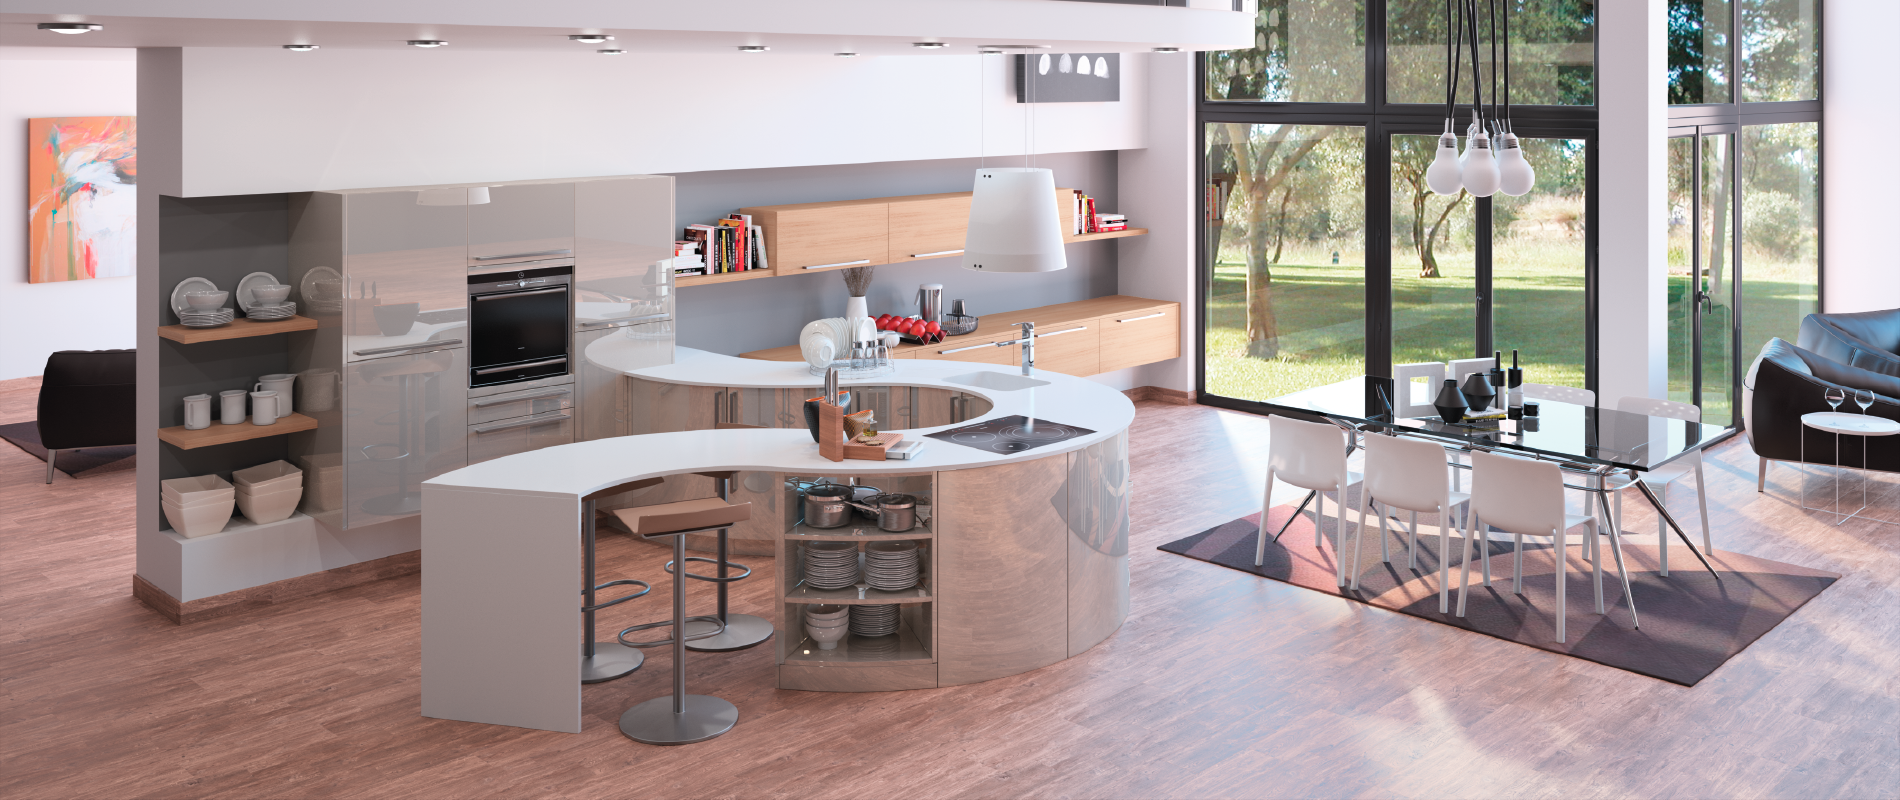 Cuisine design originale alicante zaho qualit sur for Cuisine amenagee sur mesure